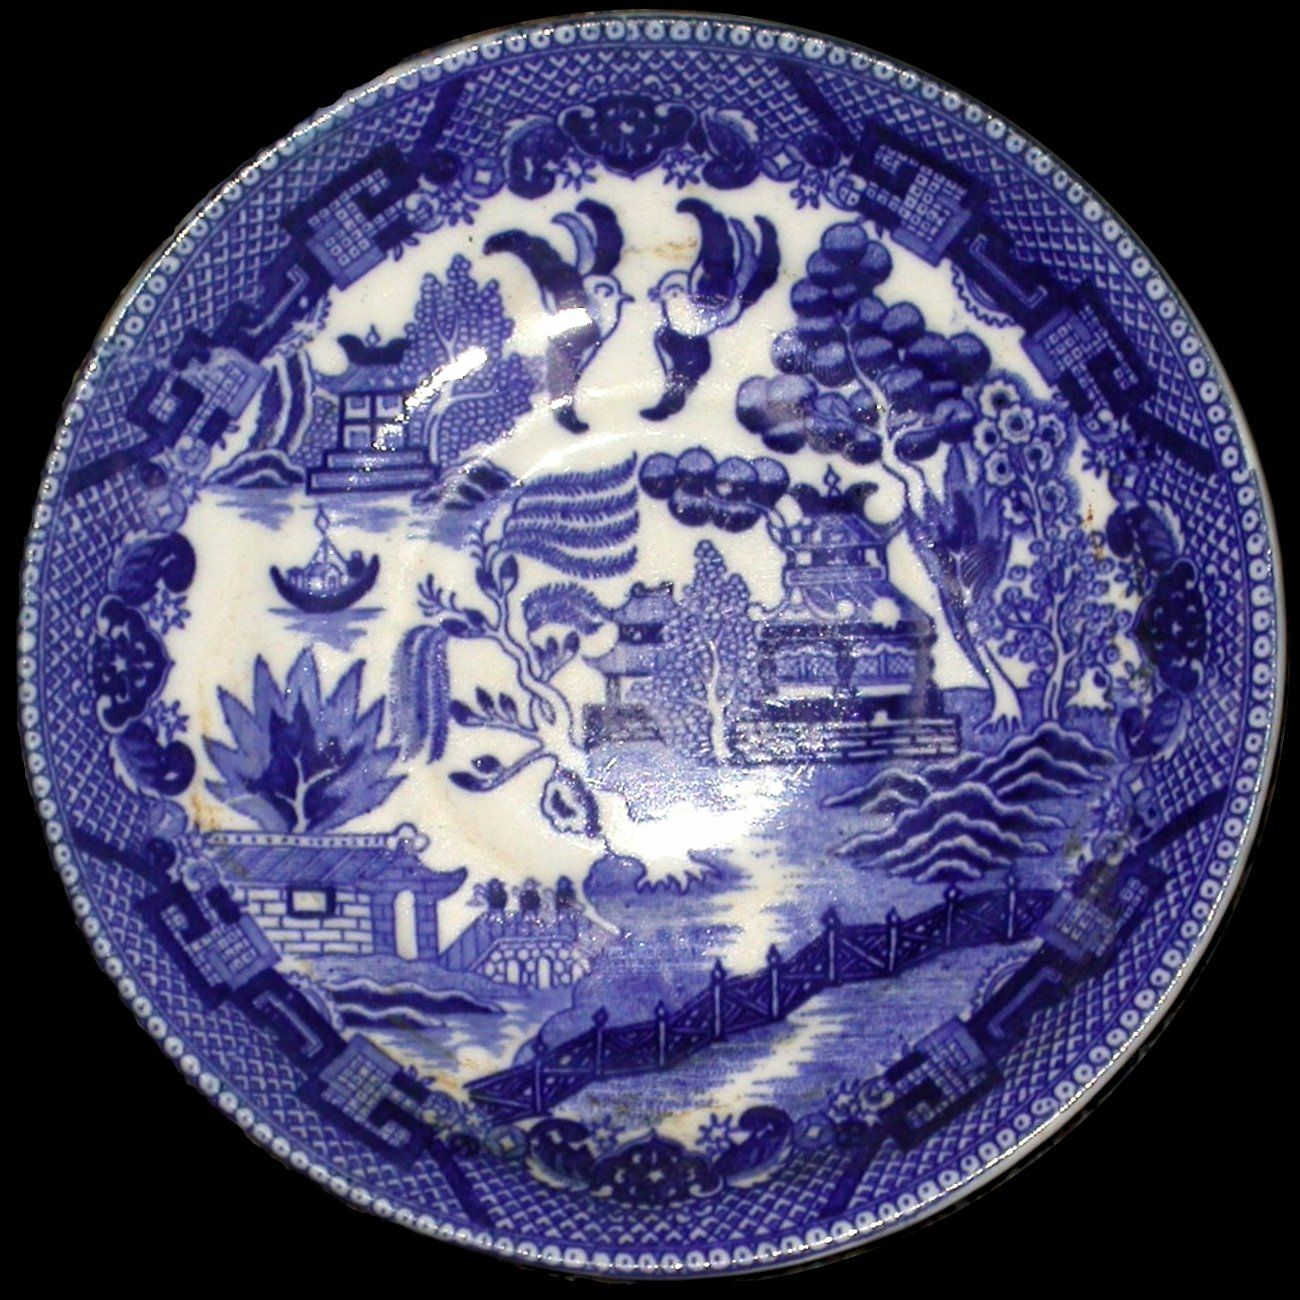 Staffordshire-Willow-Pattern-plate